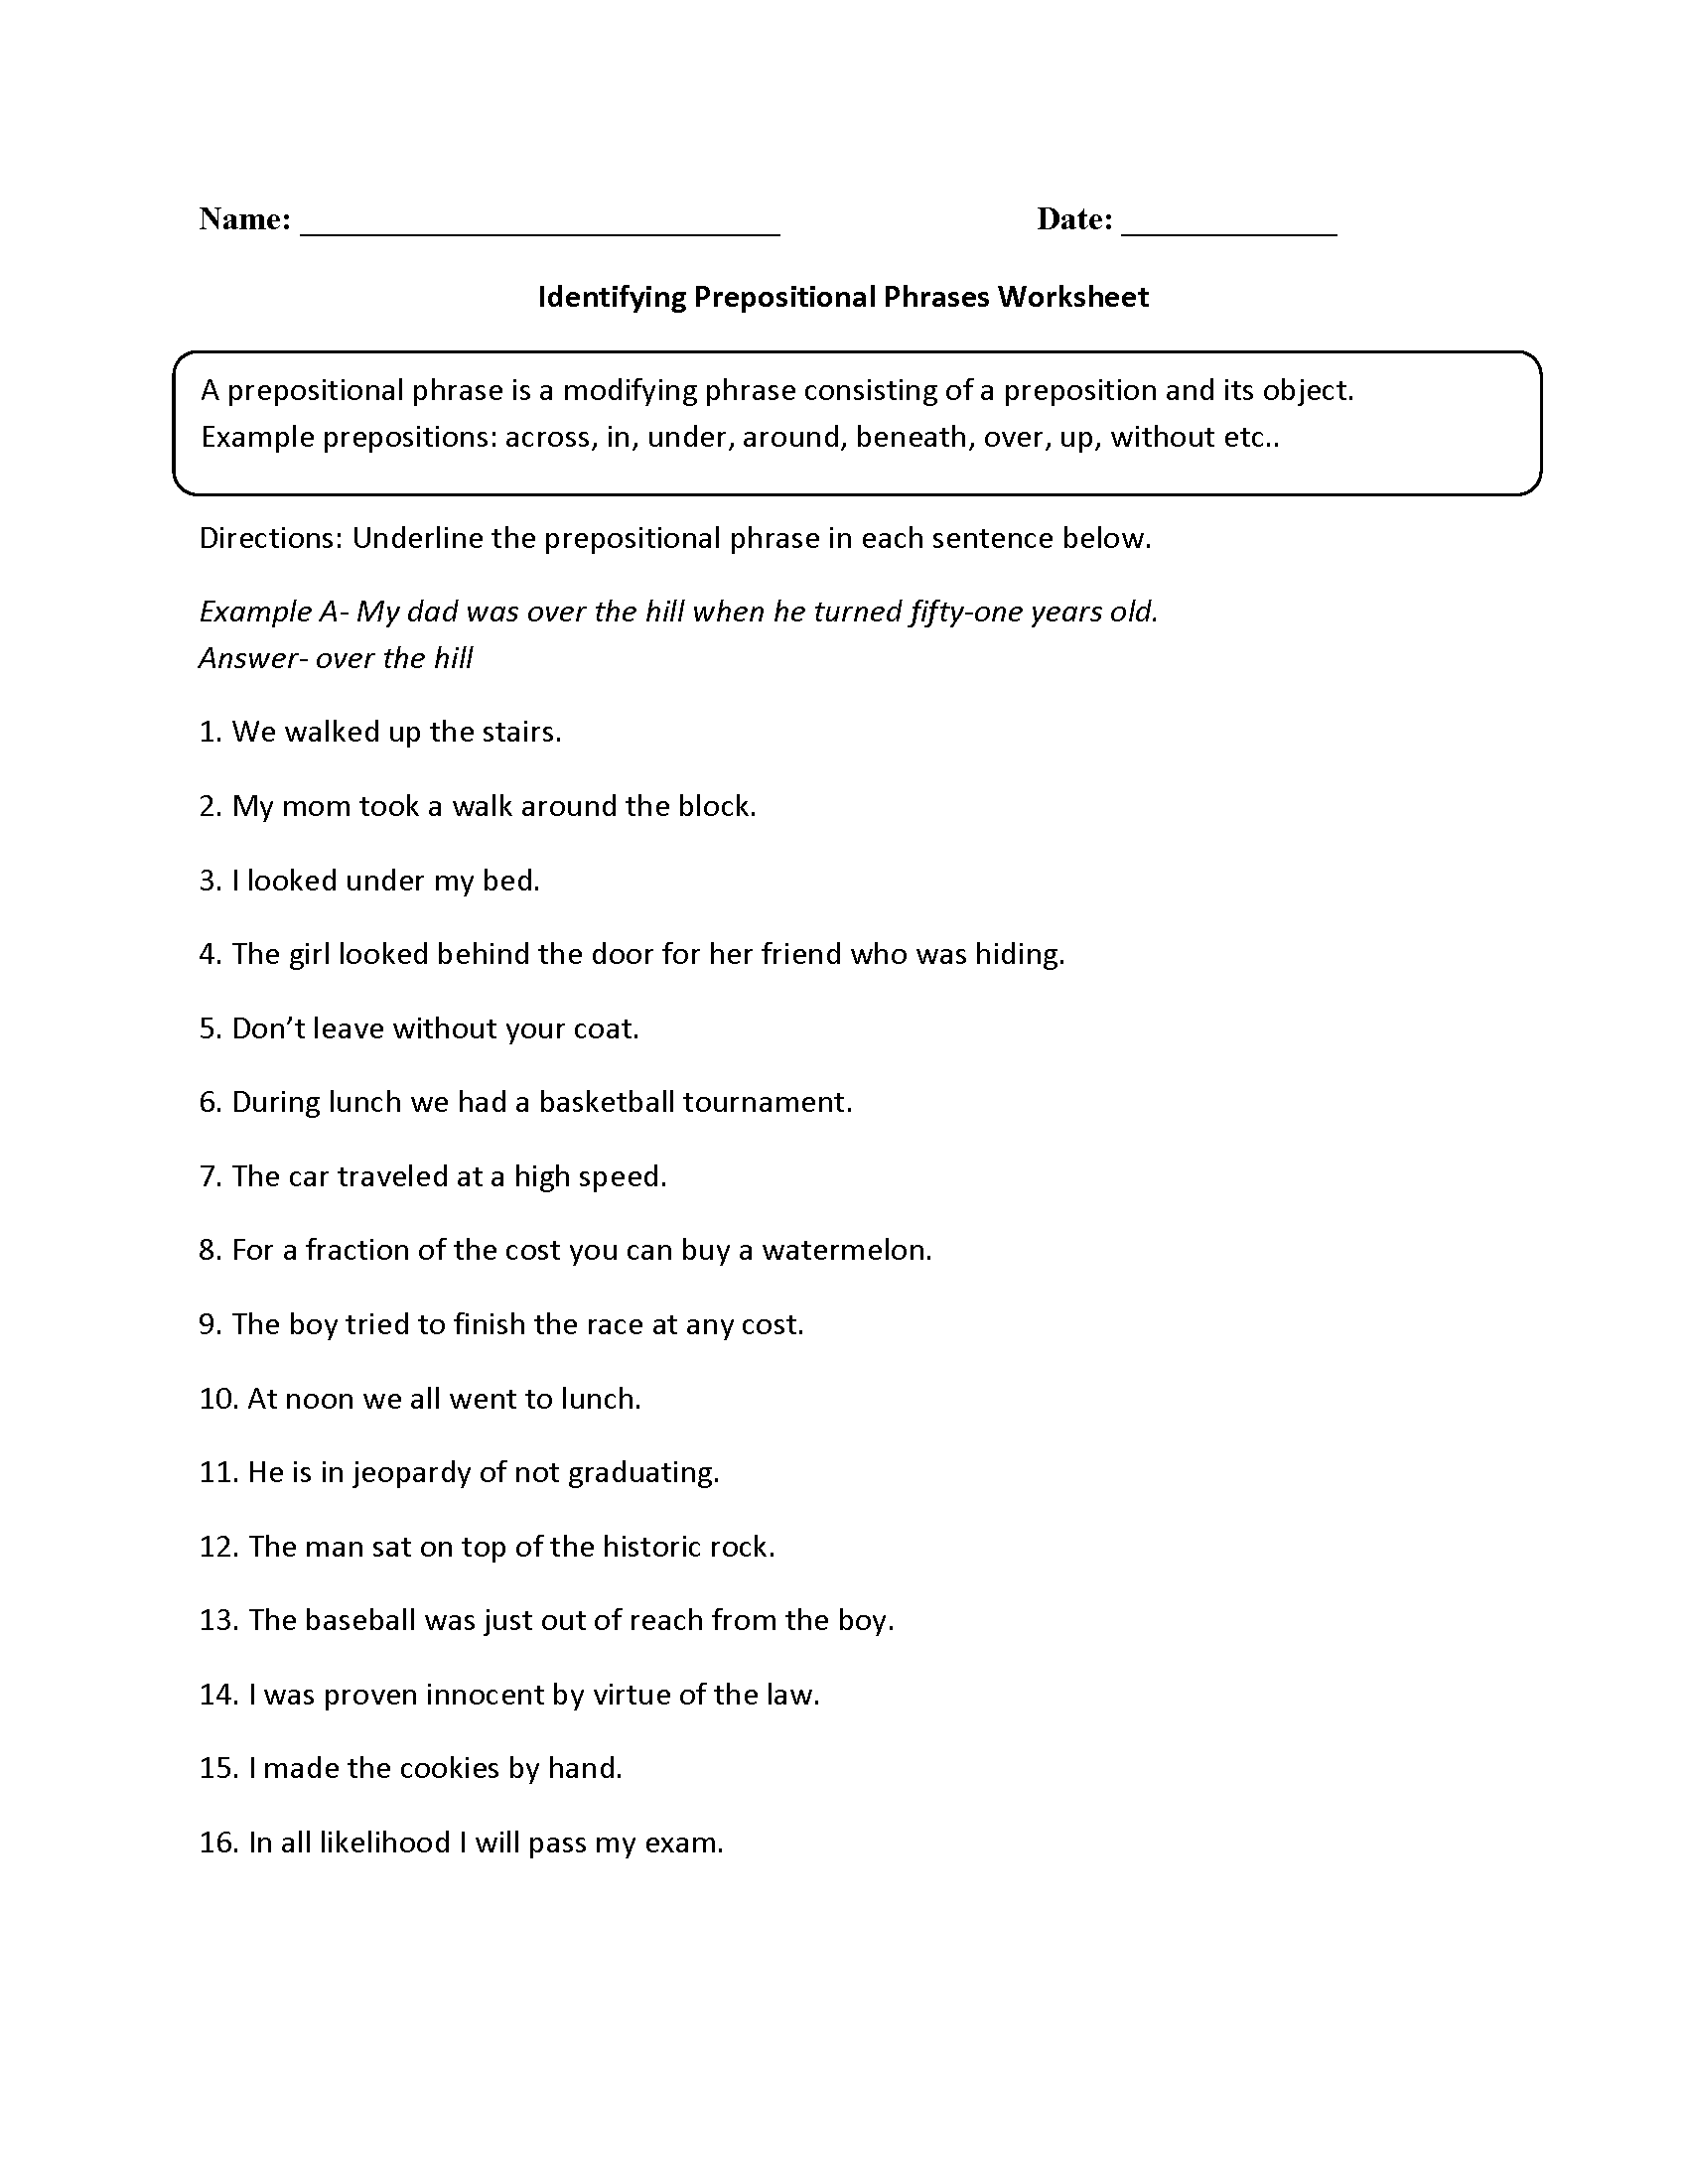 Identifying Prepositional Phrases Worksheet With Images